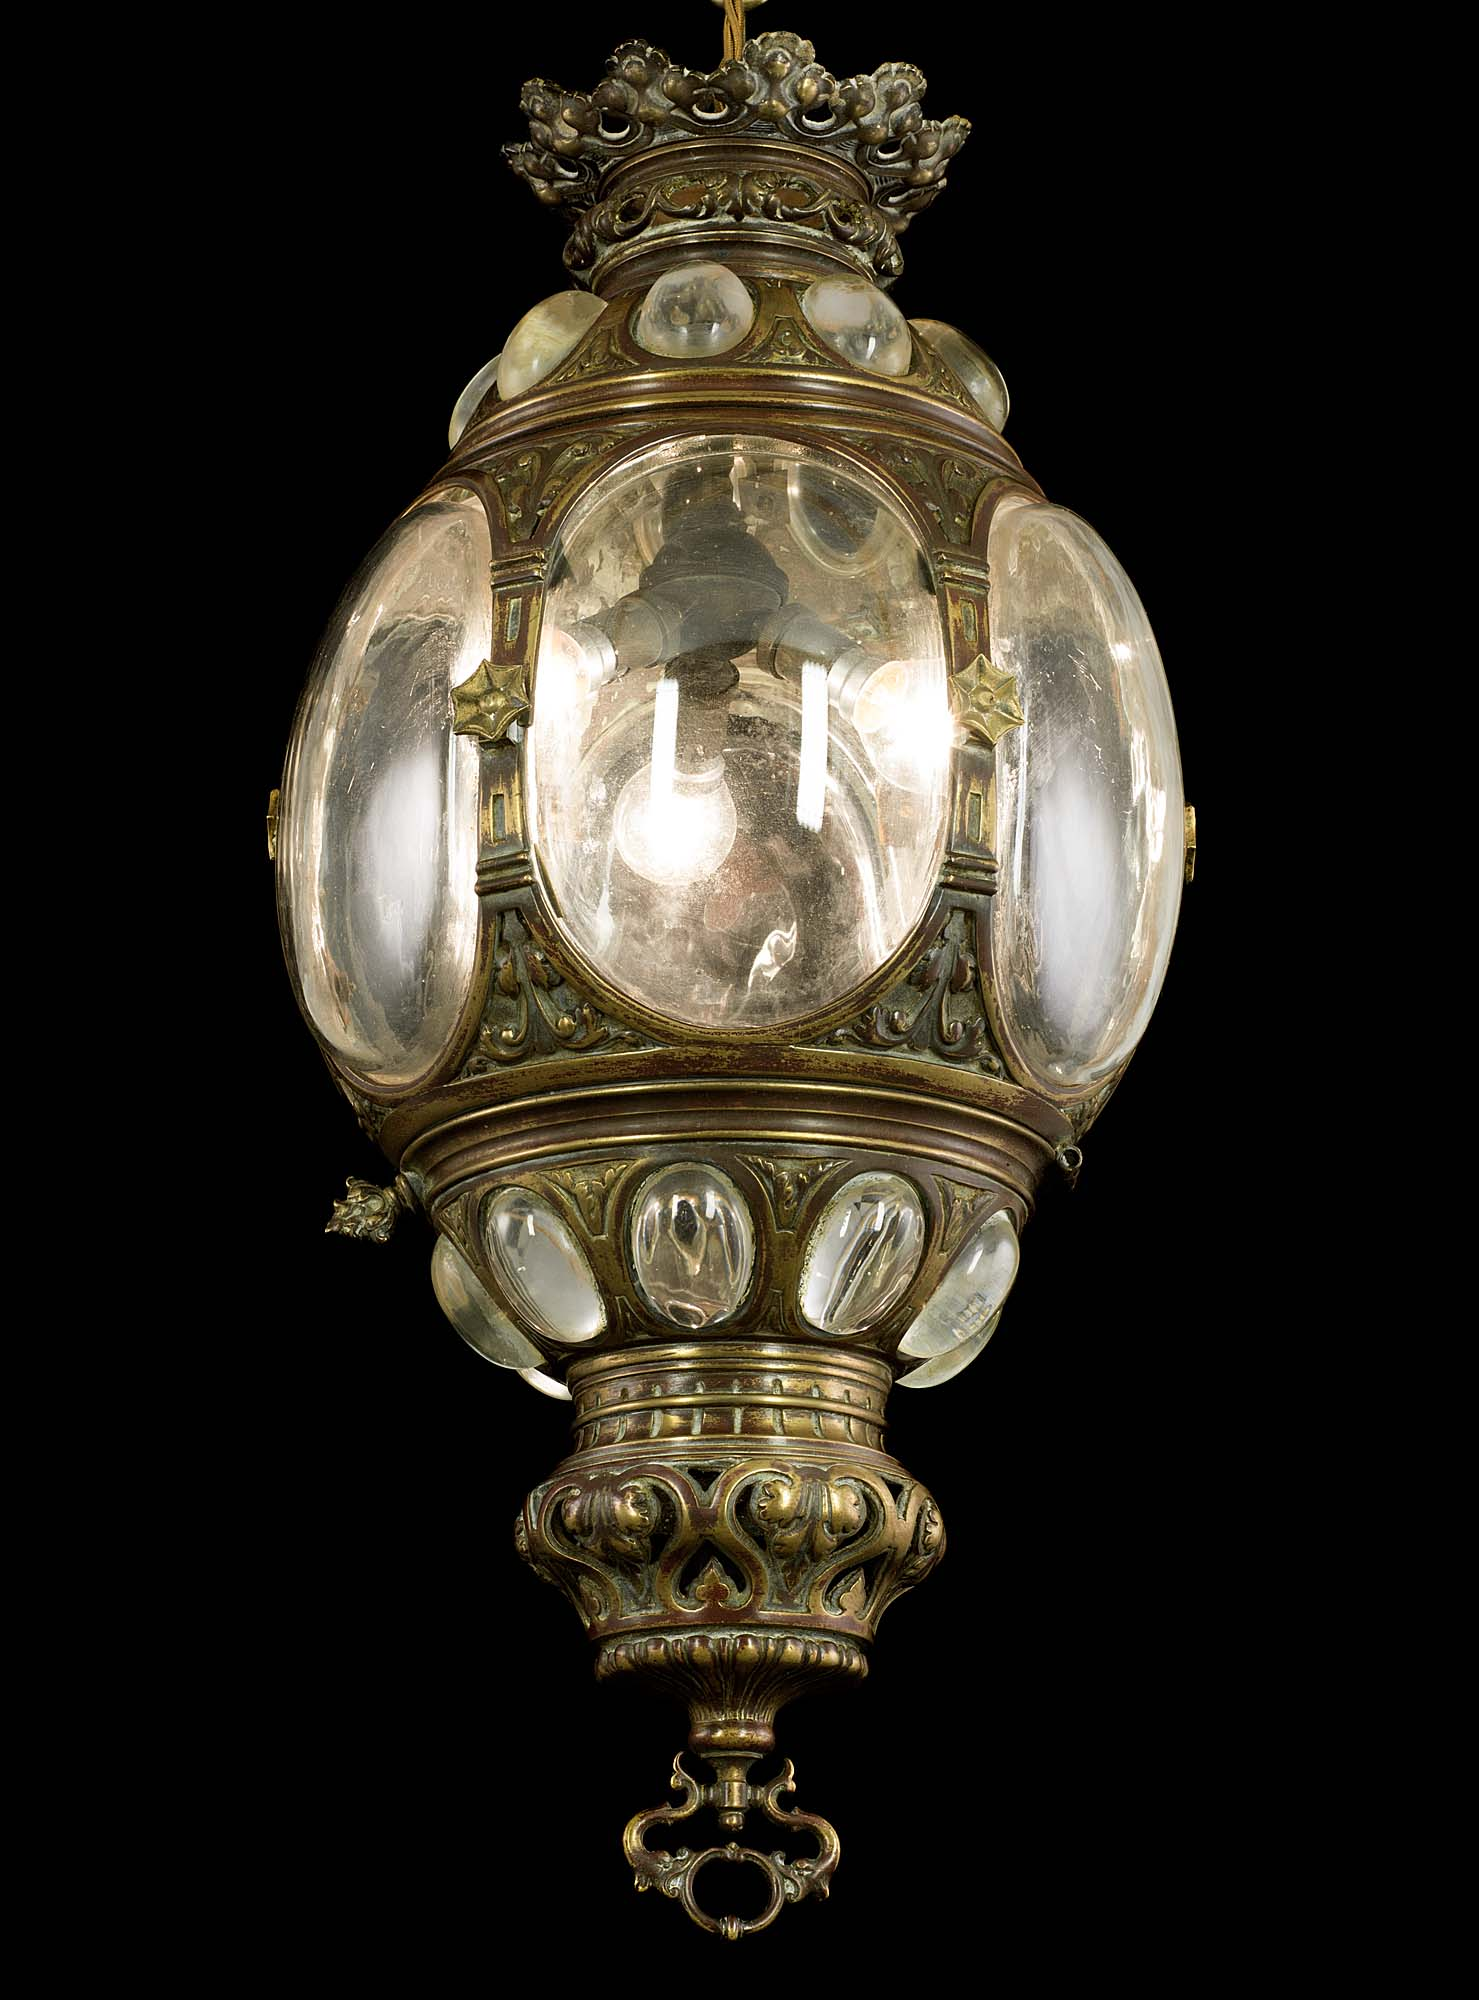 Highly ornate large Regency brass lantern